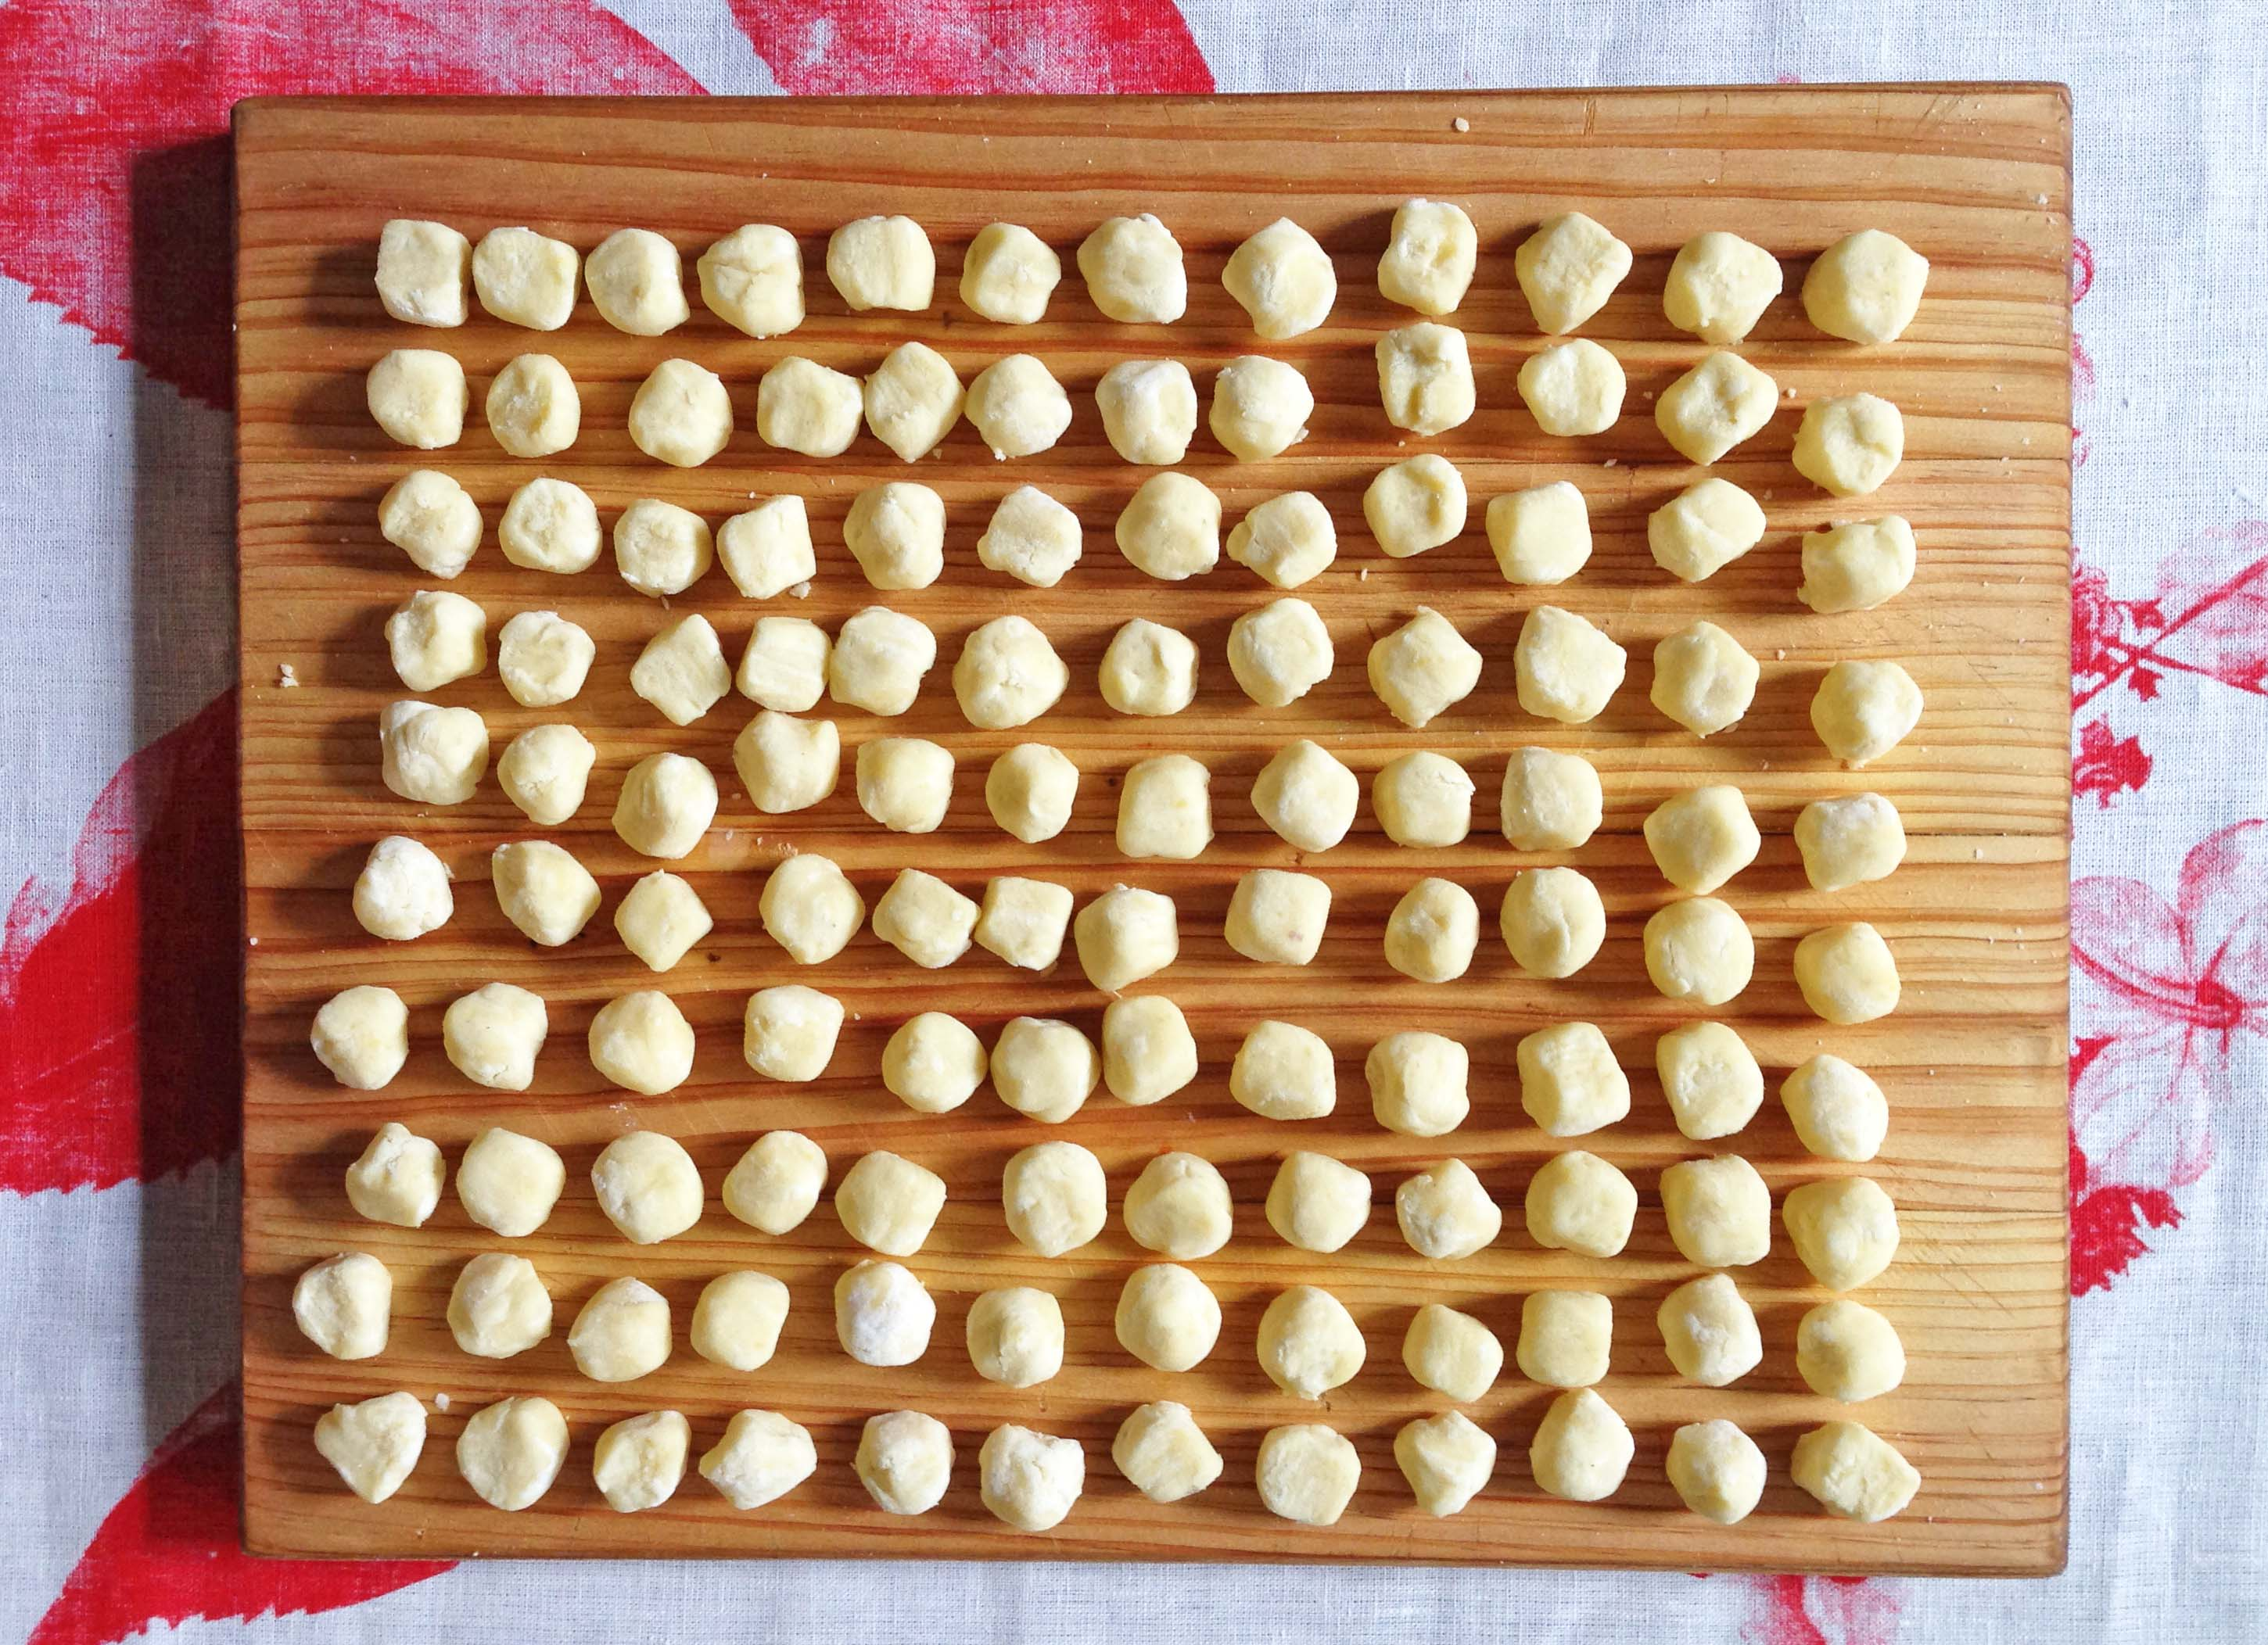 all rolled - gnocchi